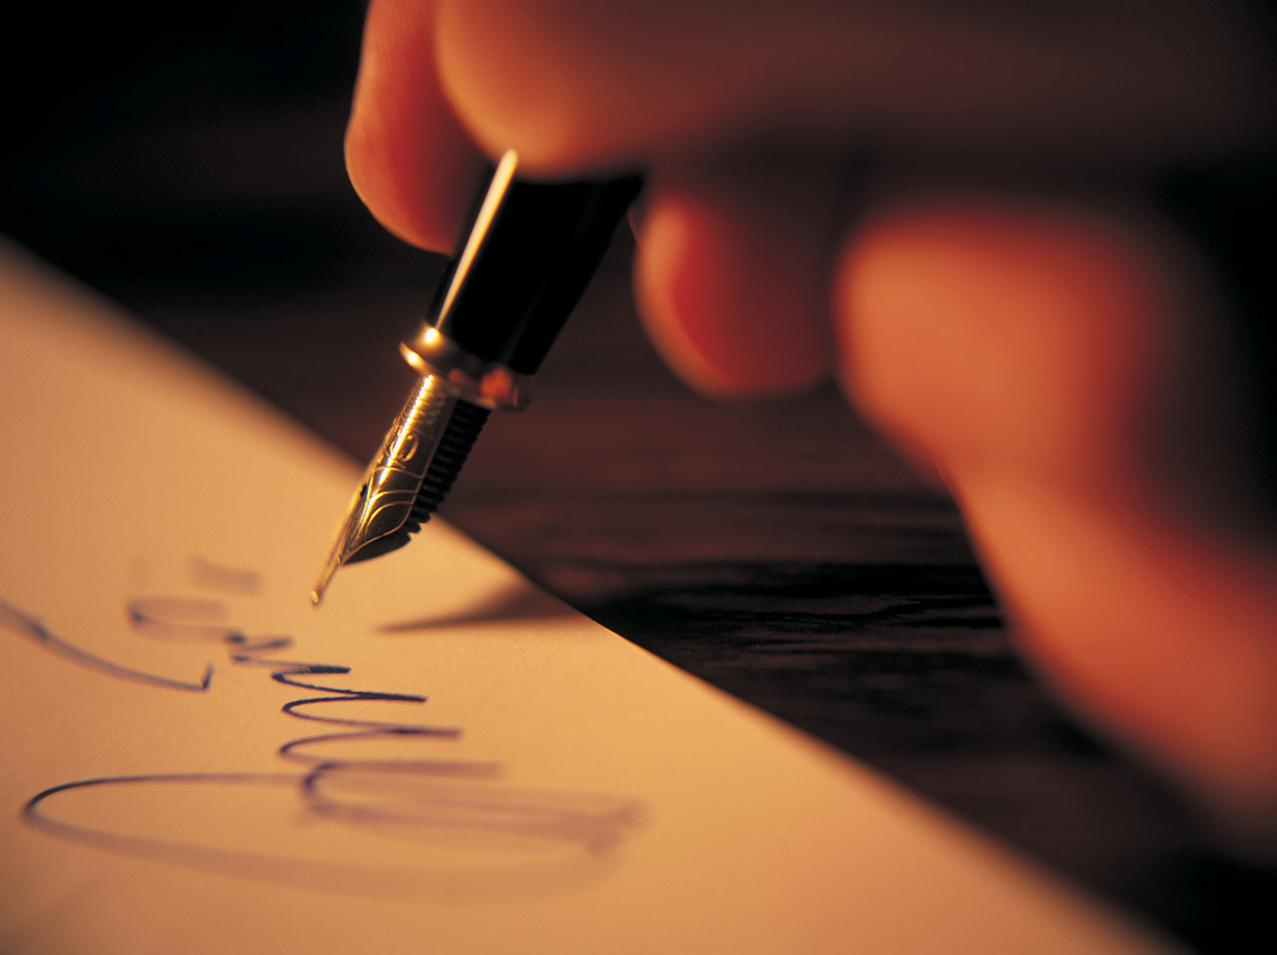 Are writers a type of medium?